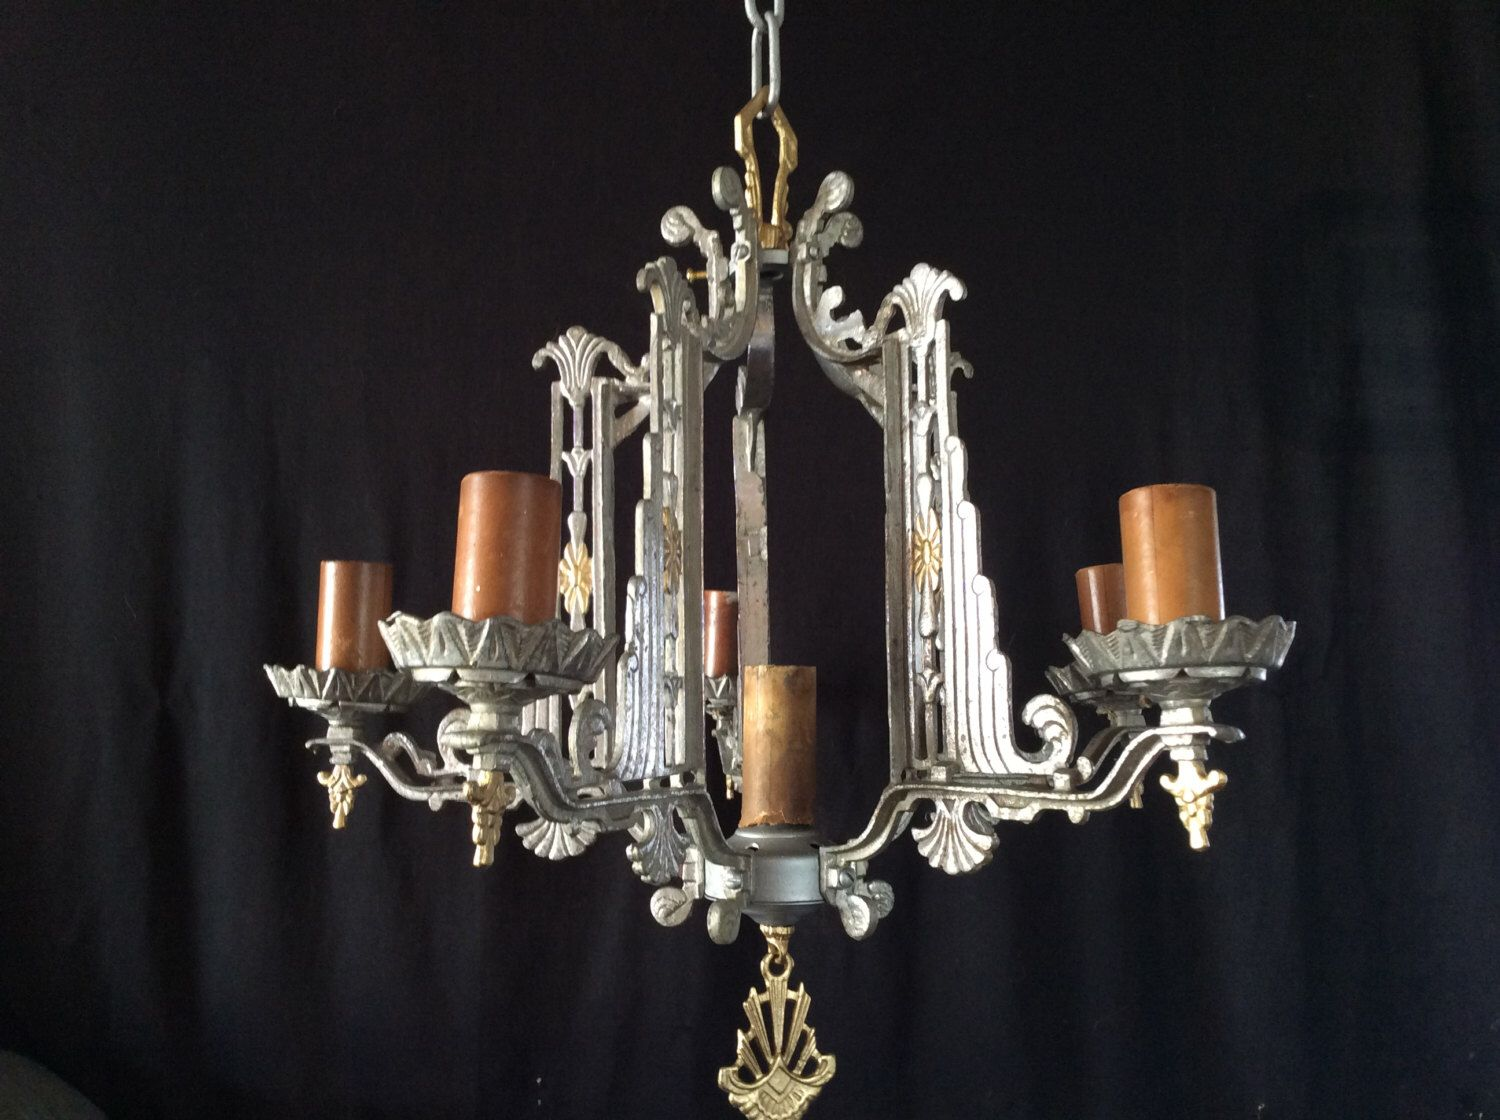 Antique Vintage Art Deco Skyser Chandelier 6 Light Late 1920s Original By Antiquelights On Etsy Https